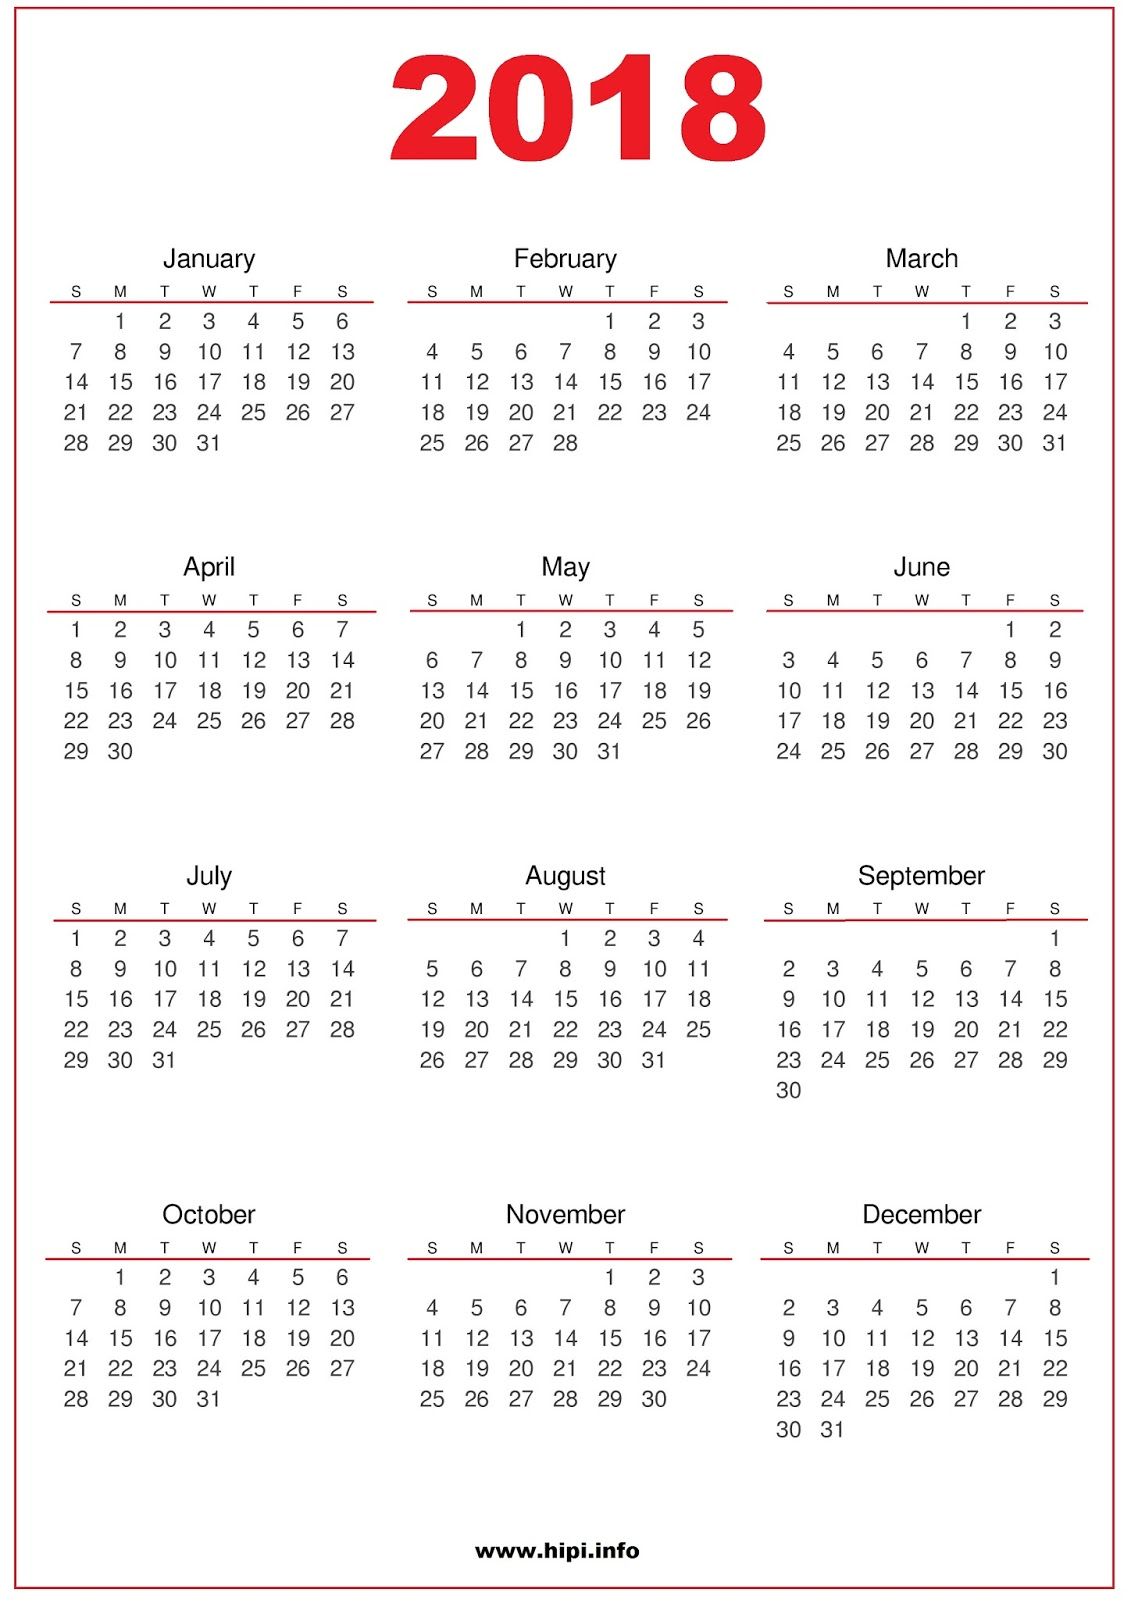 2018 Calendar Printable Free : Twitter headers facebook covers wallpapers calendars